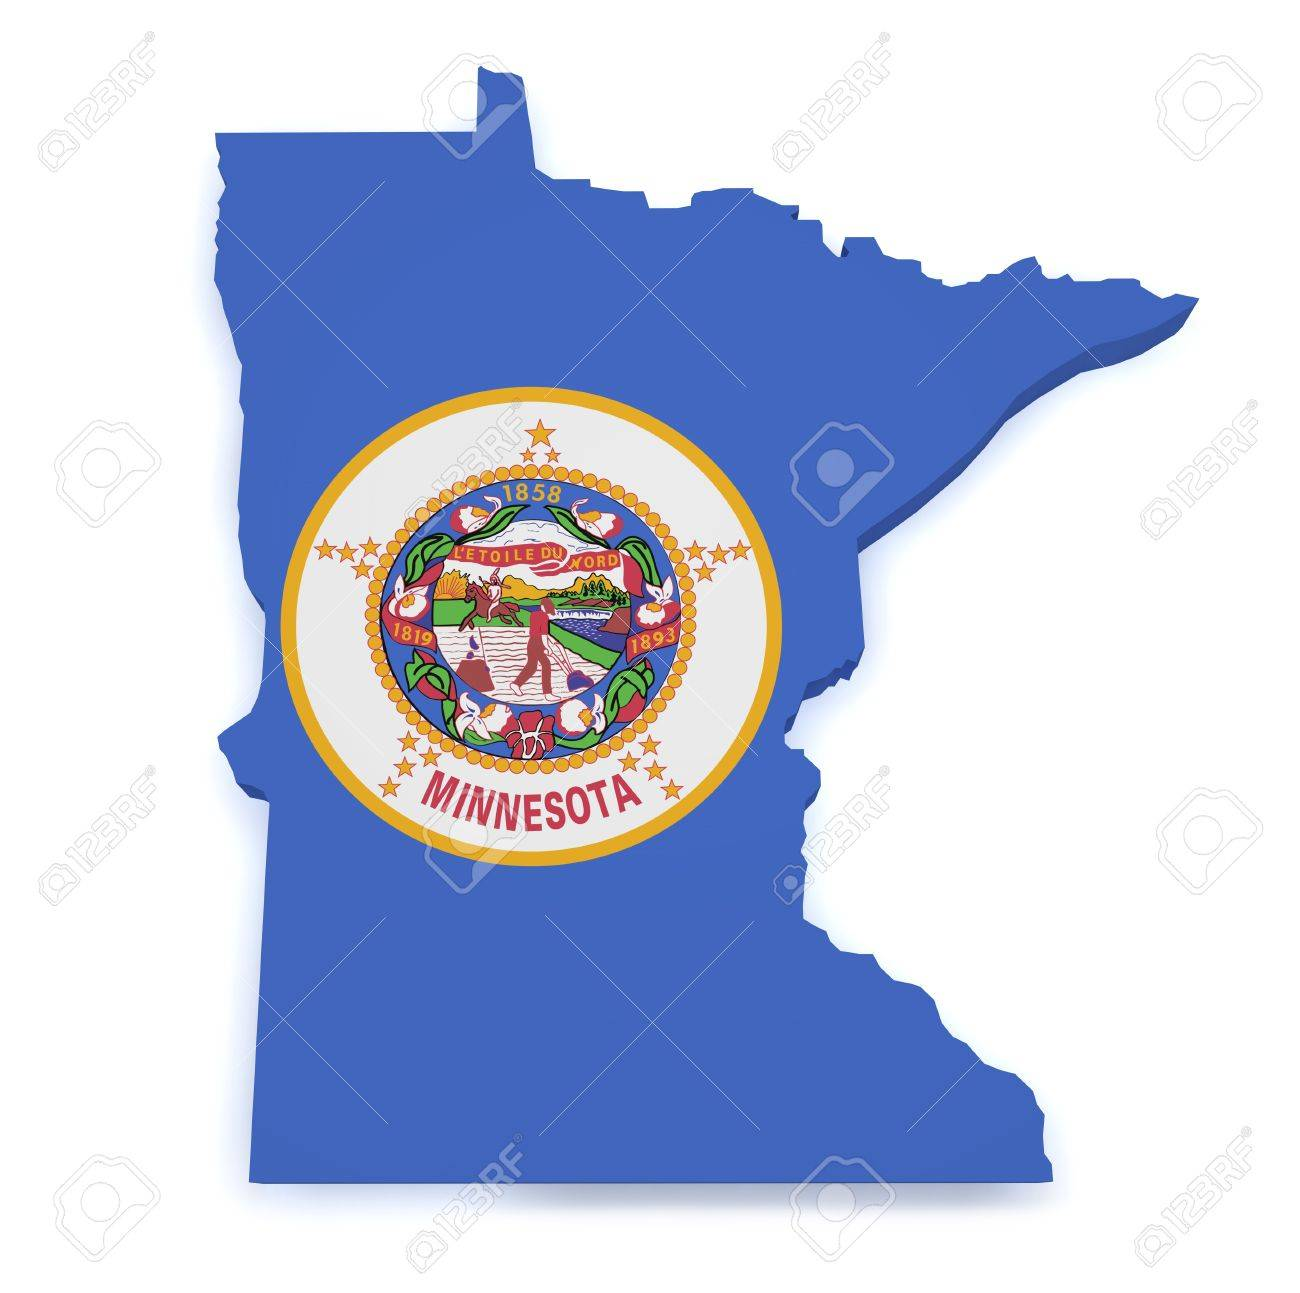 Shape 3d of Minnesota map with flag isolated on white background Stock Photo - 16269104